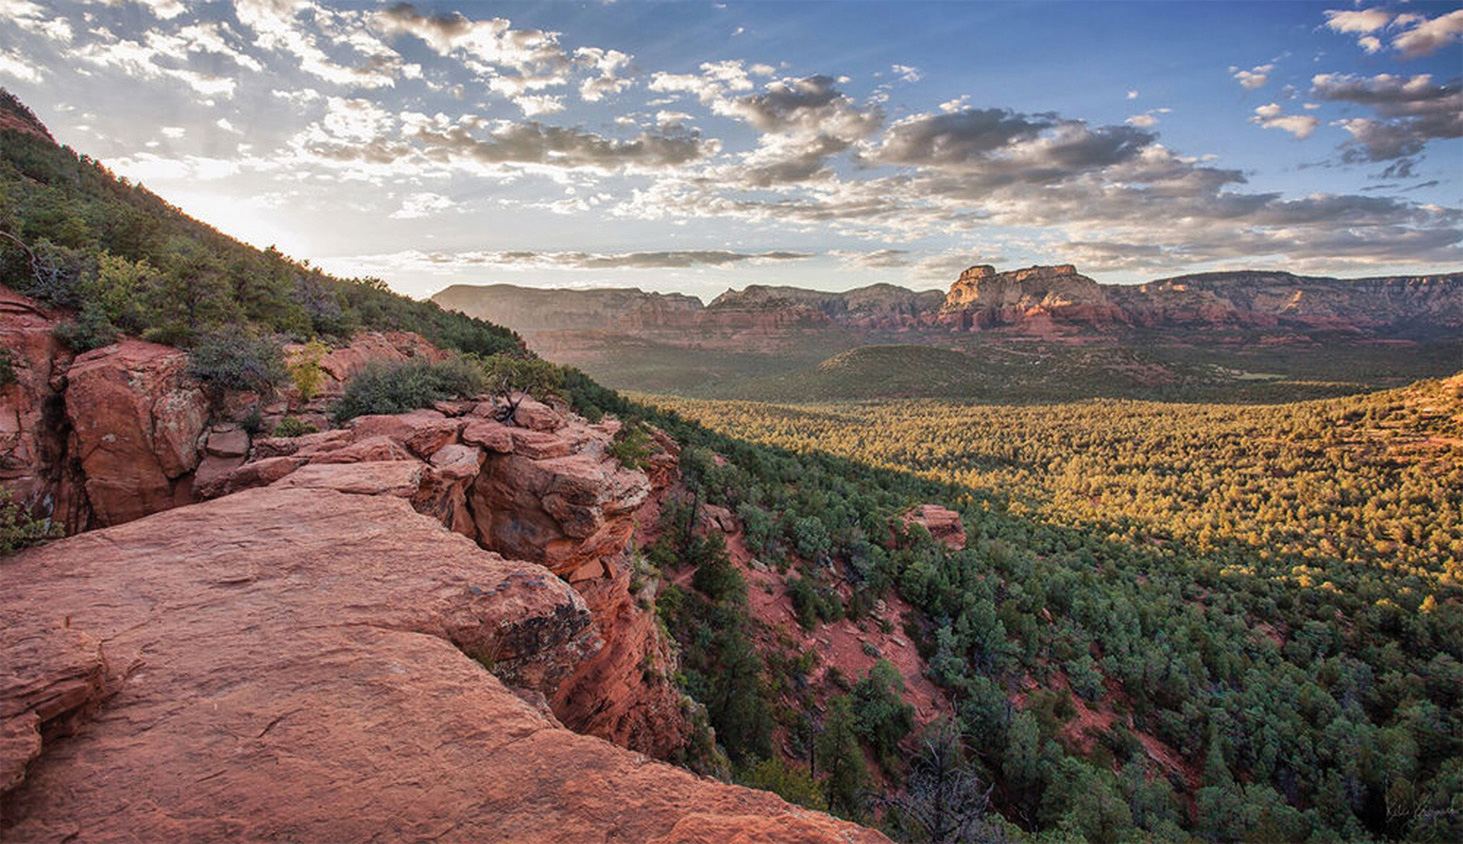 A beautiful example of Sedona scenery by Kelli Klymenko, featured presenter for the May Camera Club meeting.